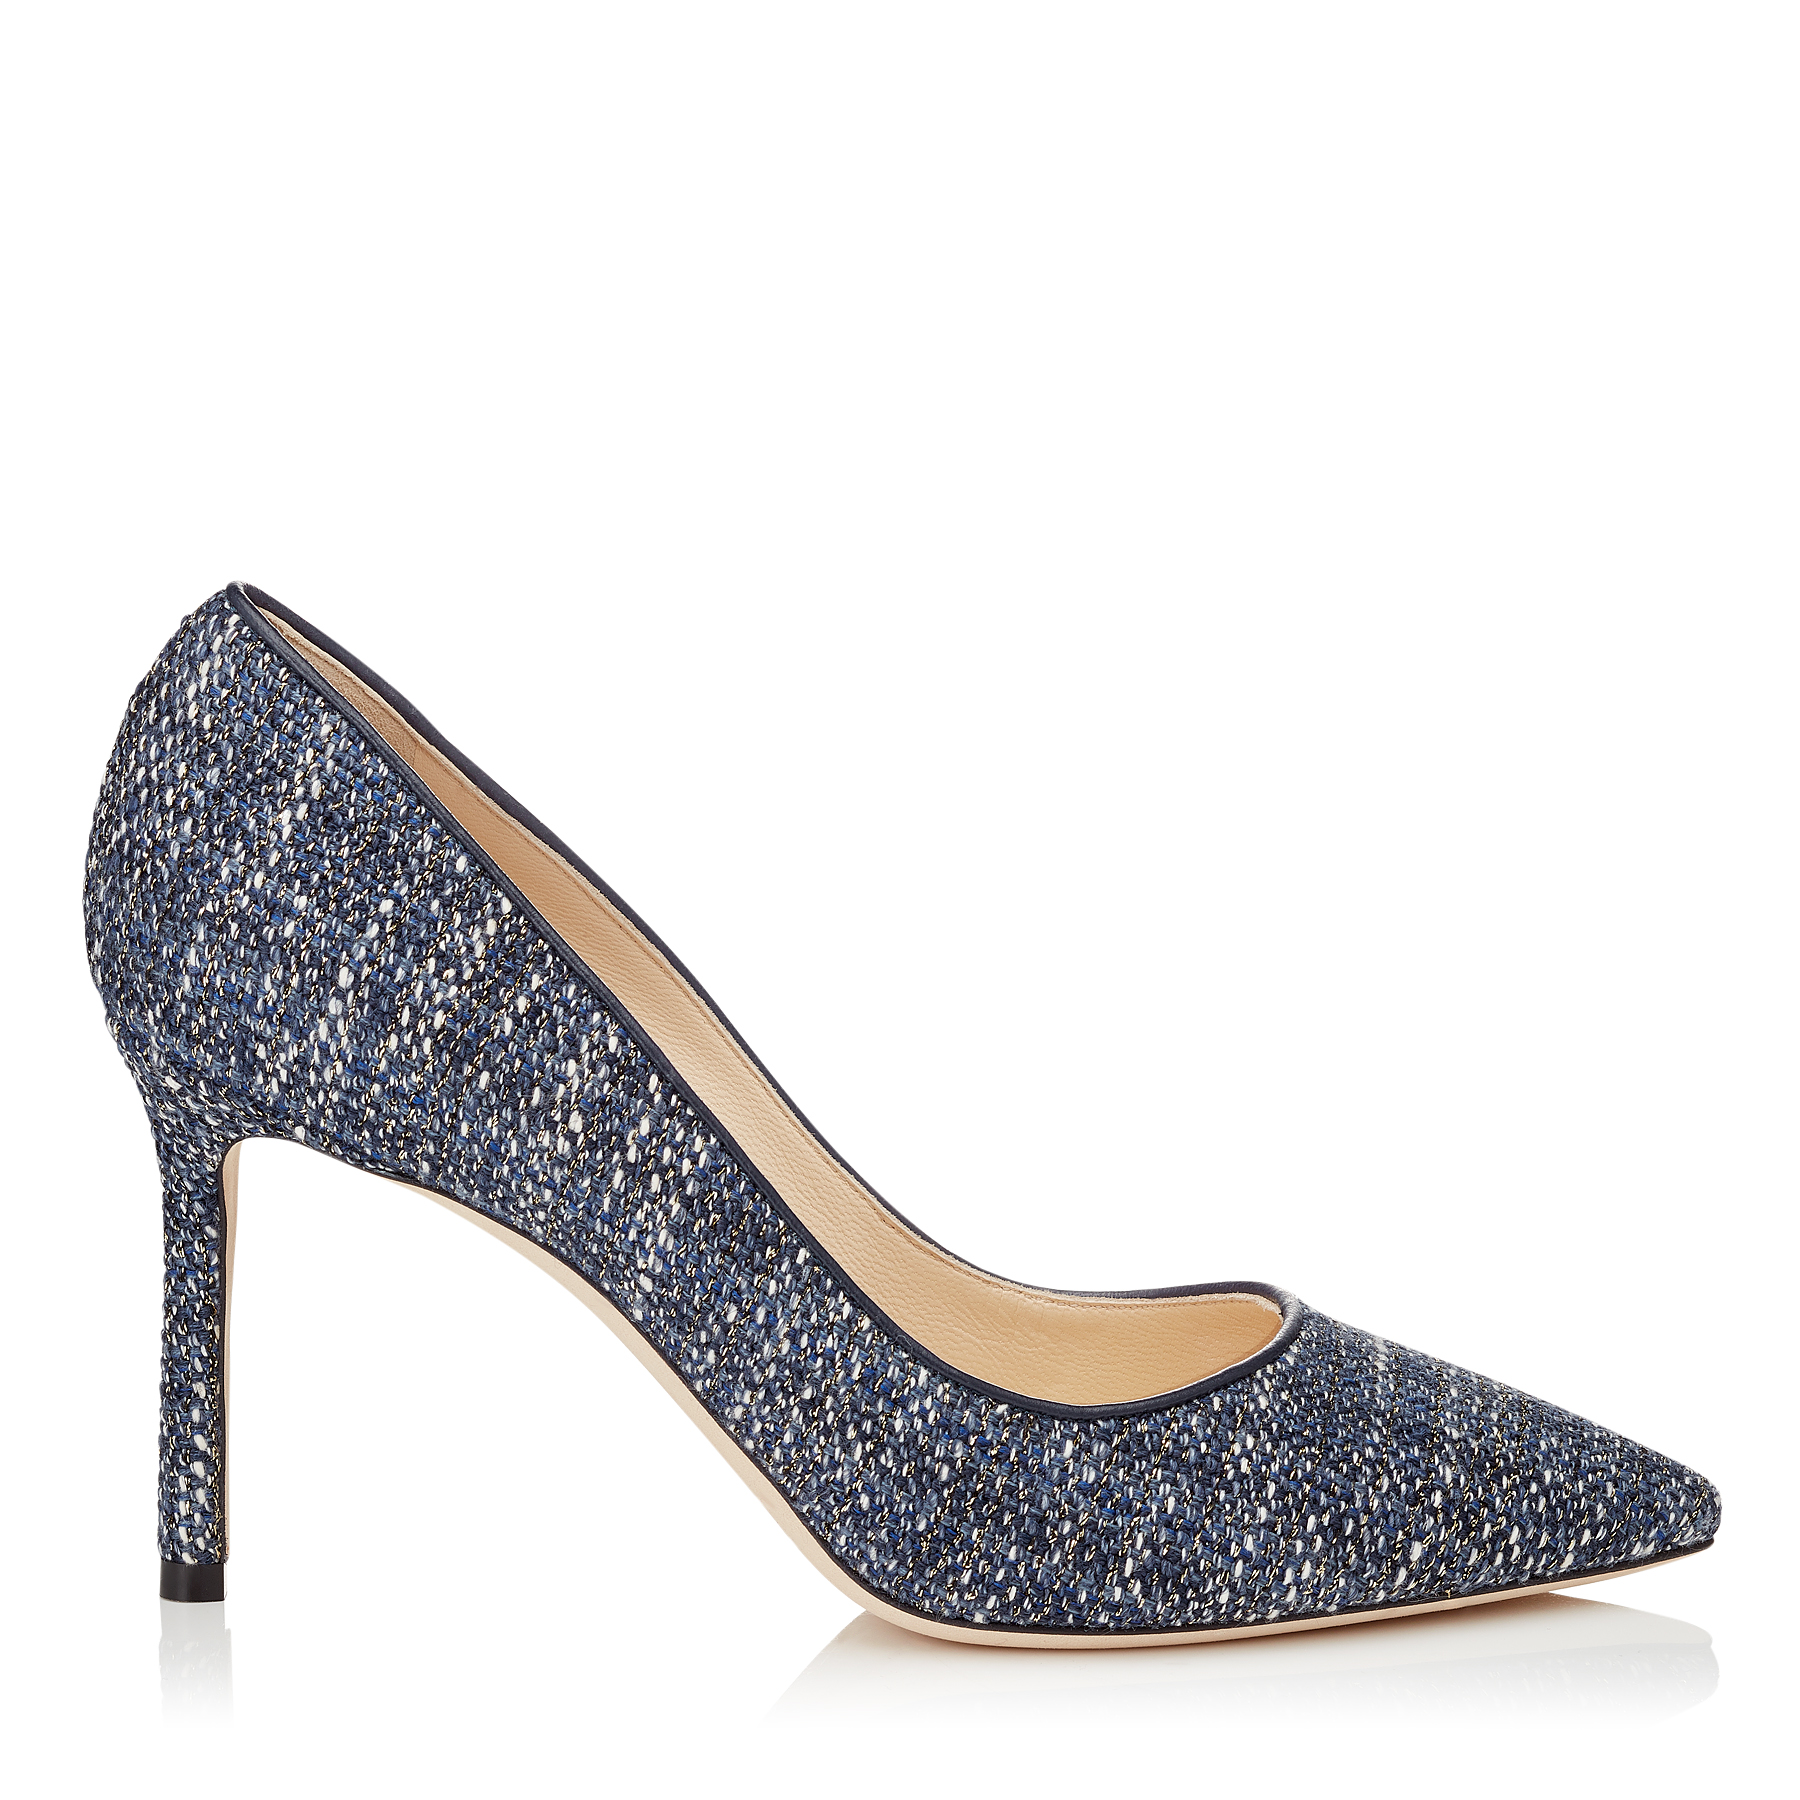 ROMY 85 Navy Metallic Tweed Pointy Toe Pumps by Jimmy Choo